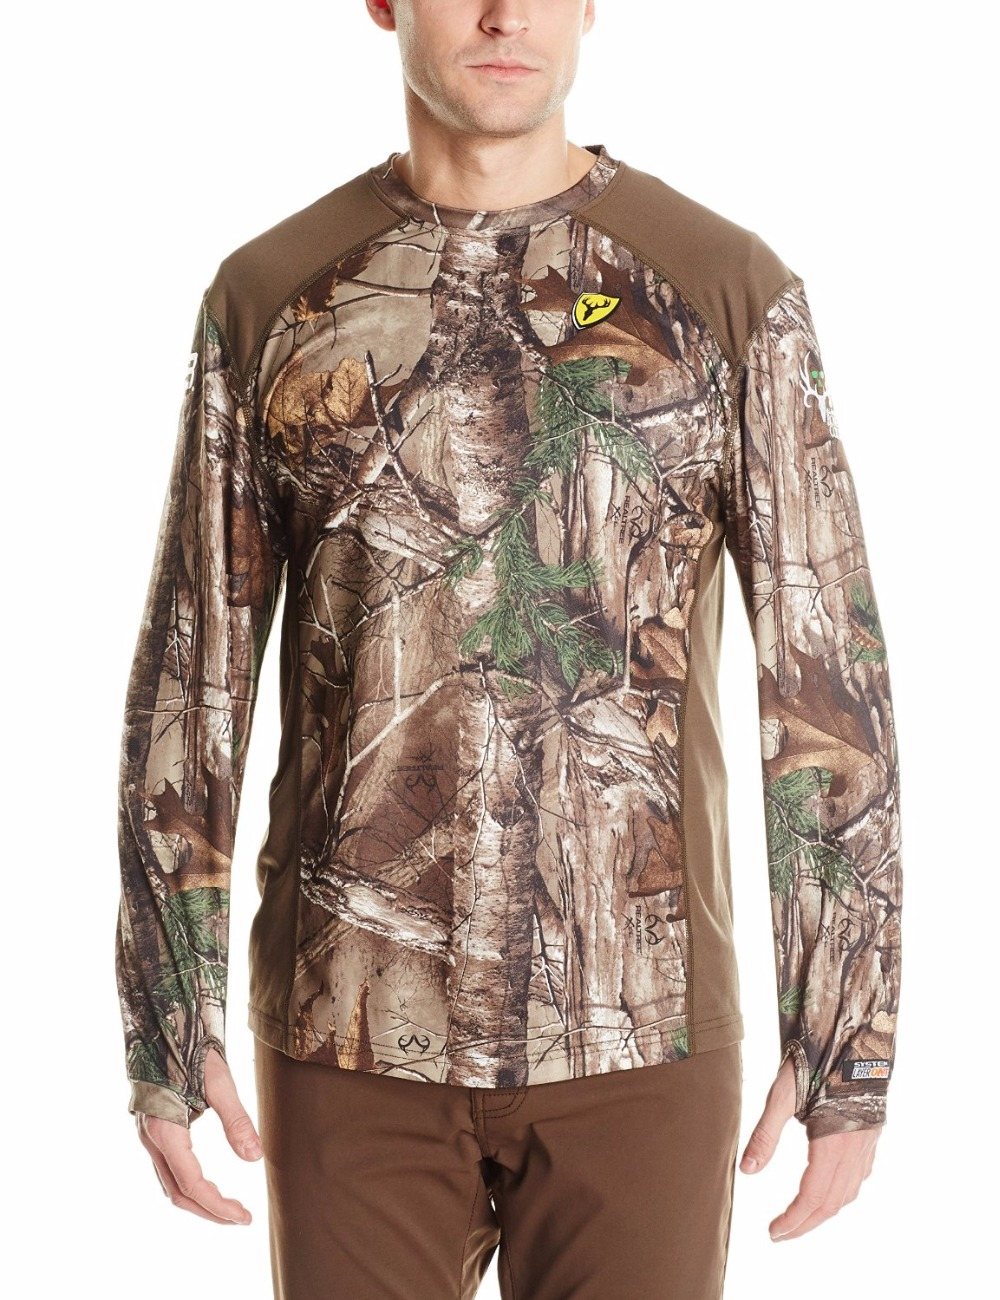 8a89f78aca899 Men Robinson Products Camo S3 Midweight Long Sleeve Top Clothes Camo Realtree  Xtra T Shirt Ghillie Suits